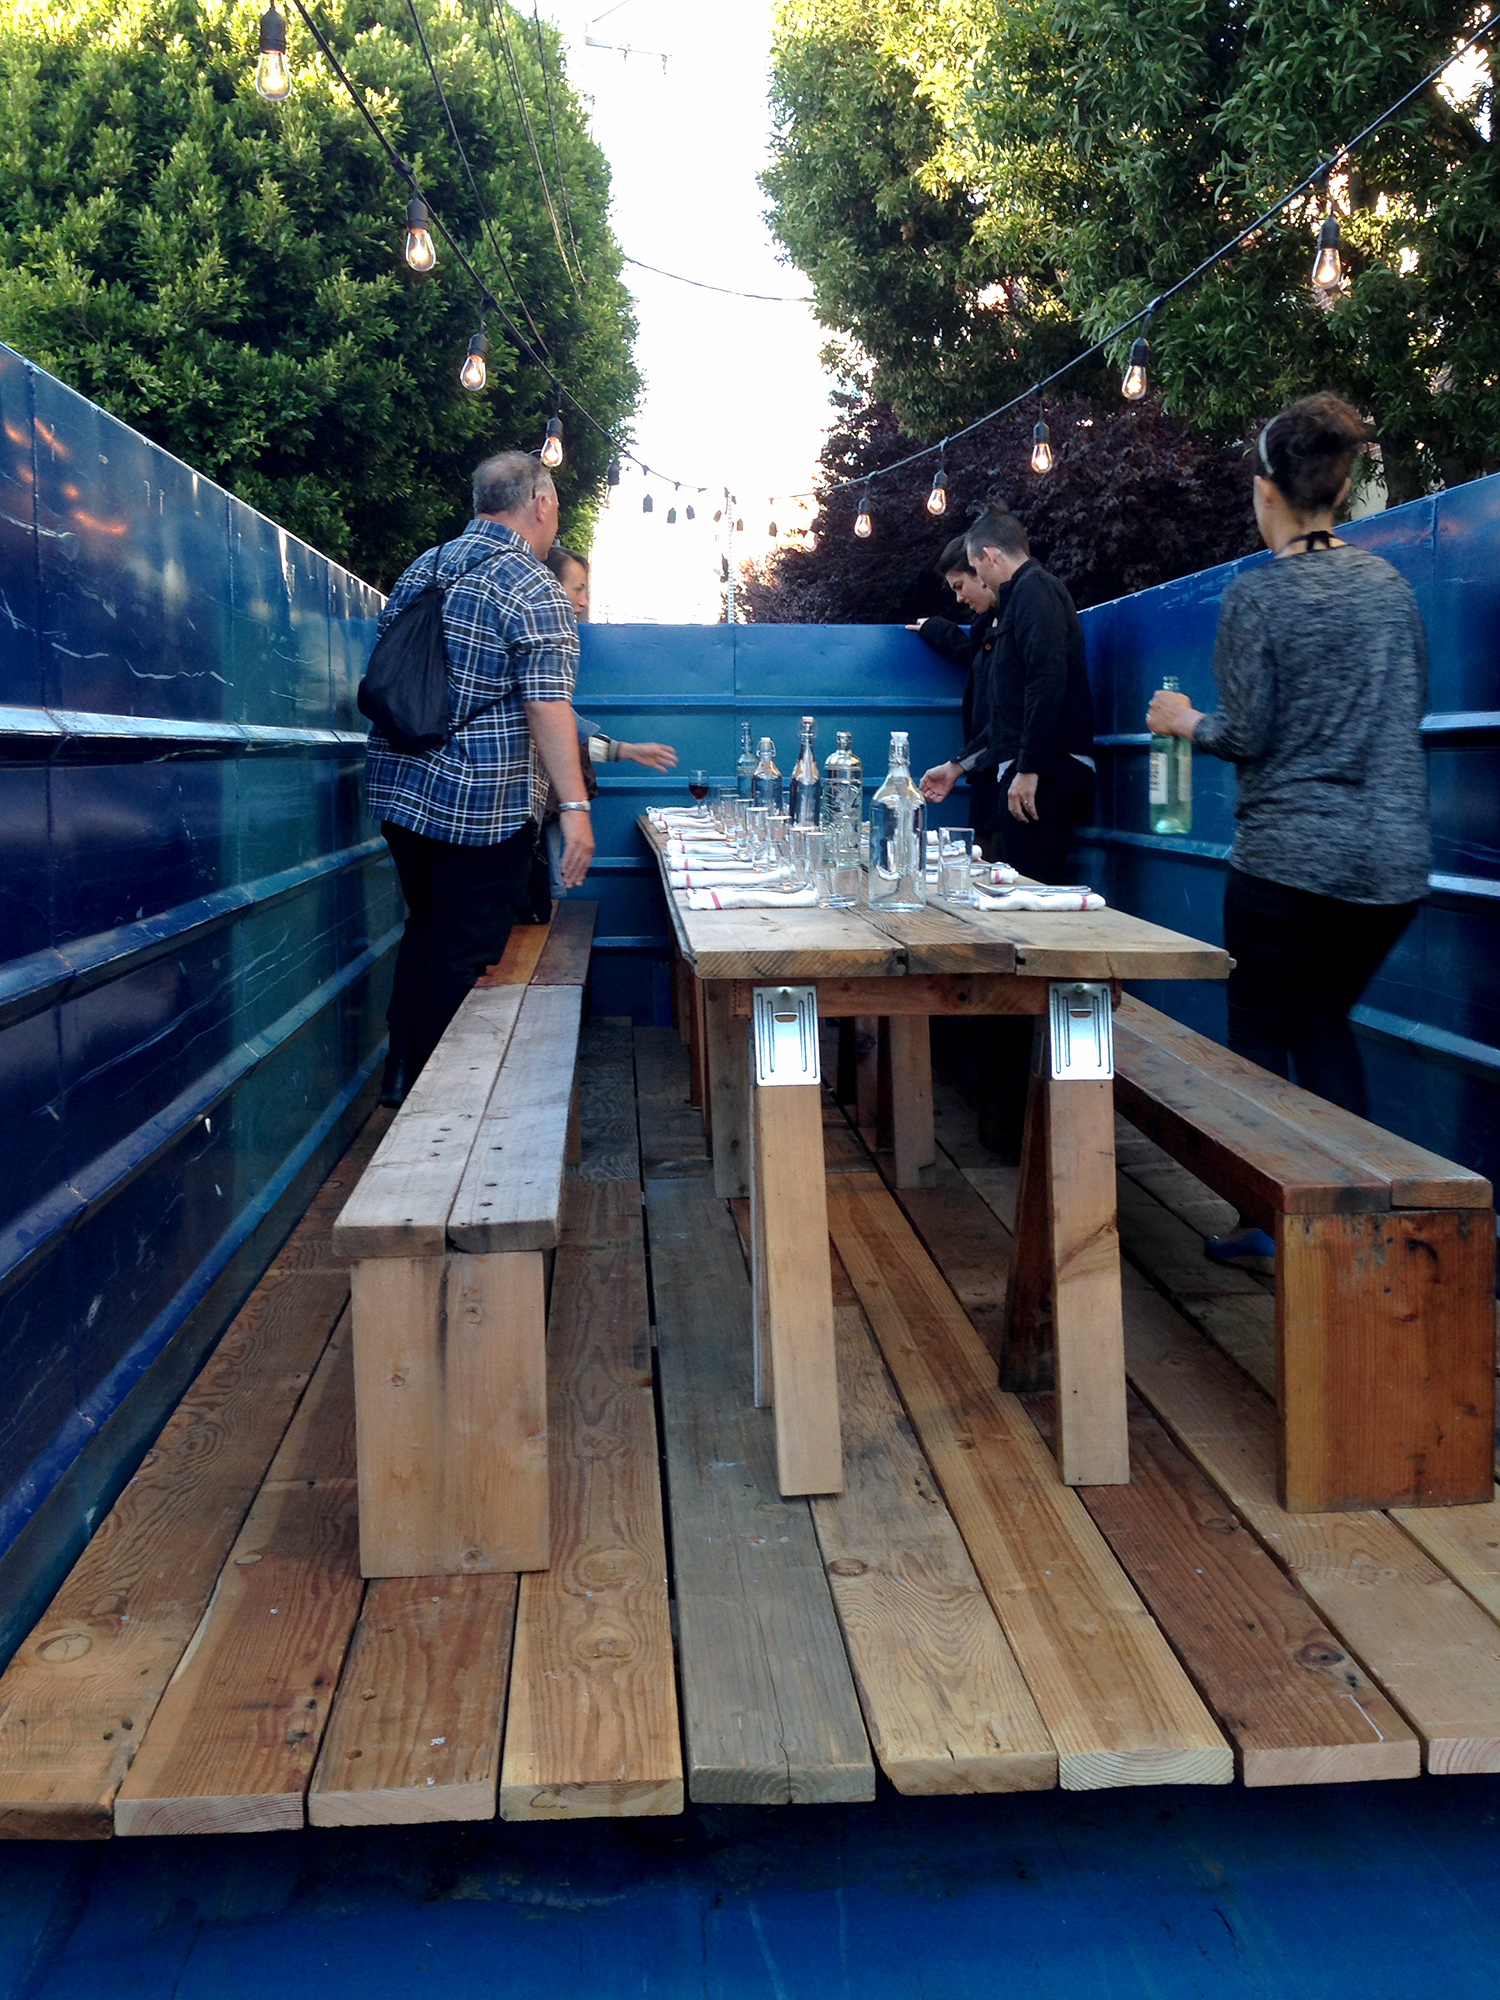 This San Francisco dumpster was decorated with glass tea lights, long wooden benches and bar towel napkins for the Salvage Supperclub dinner.